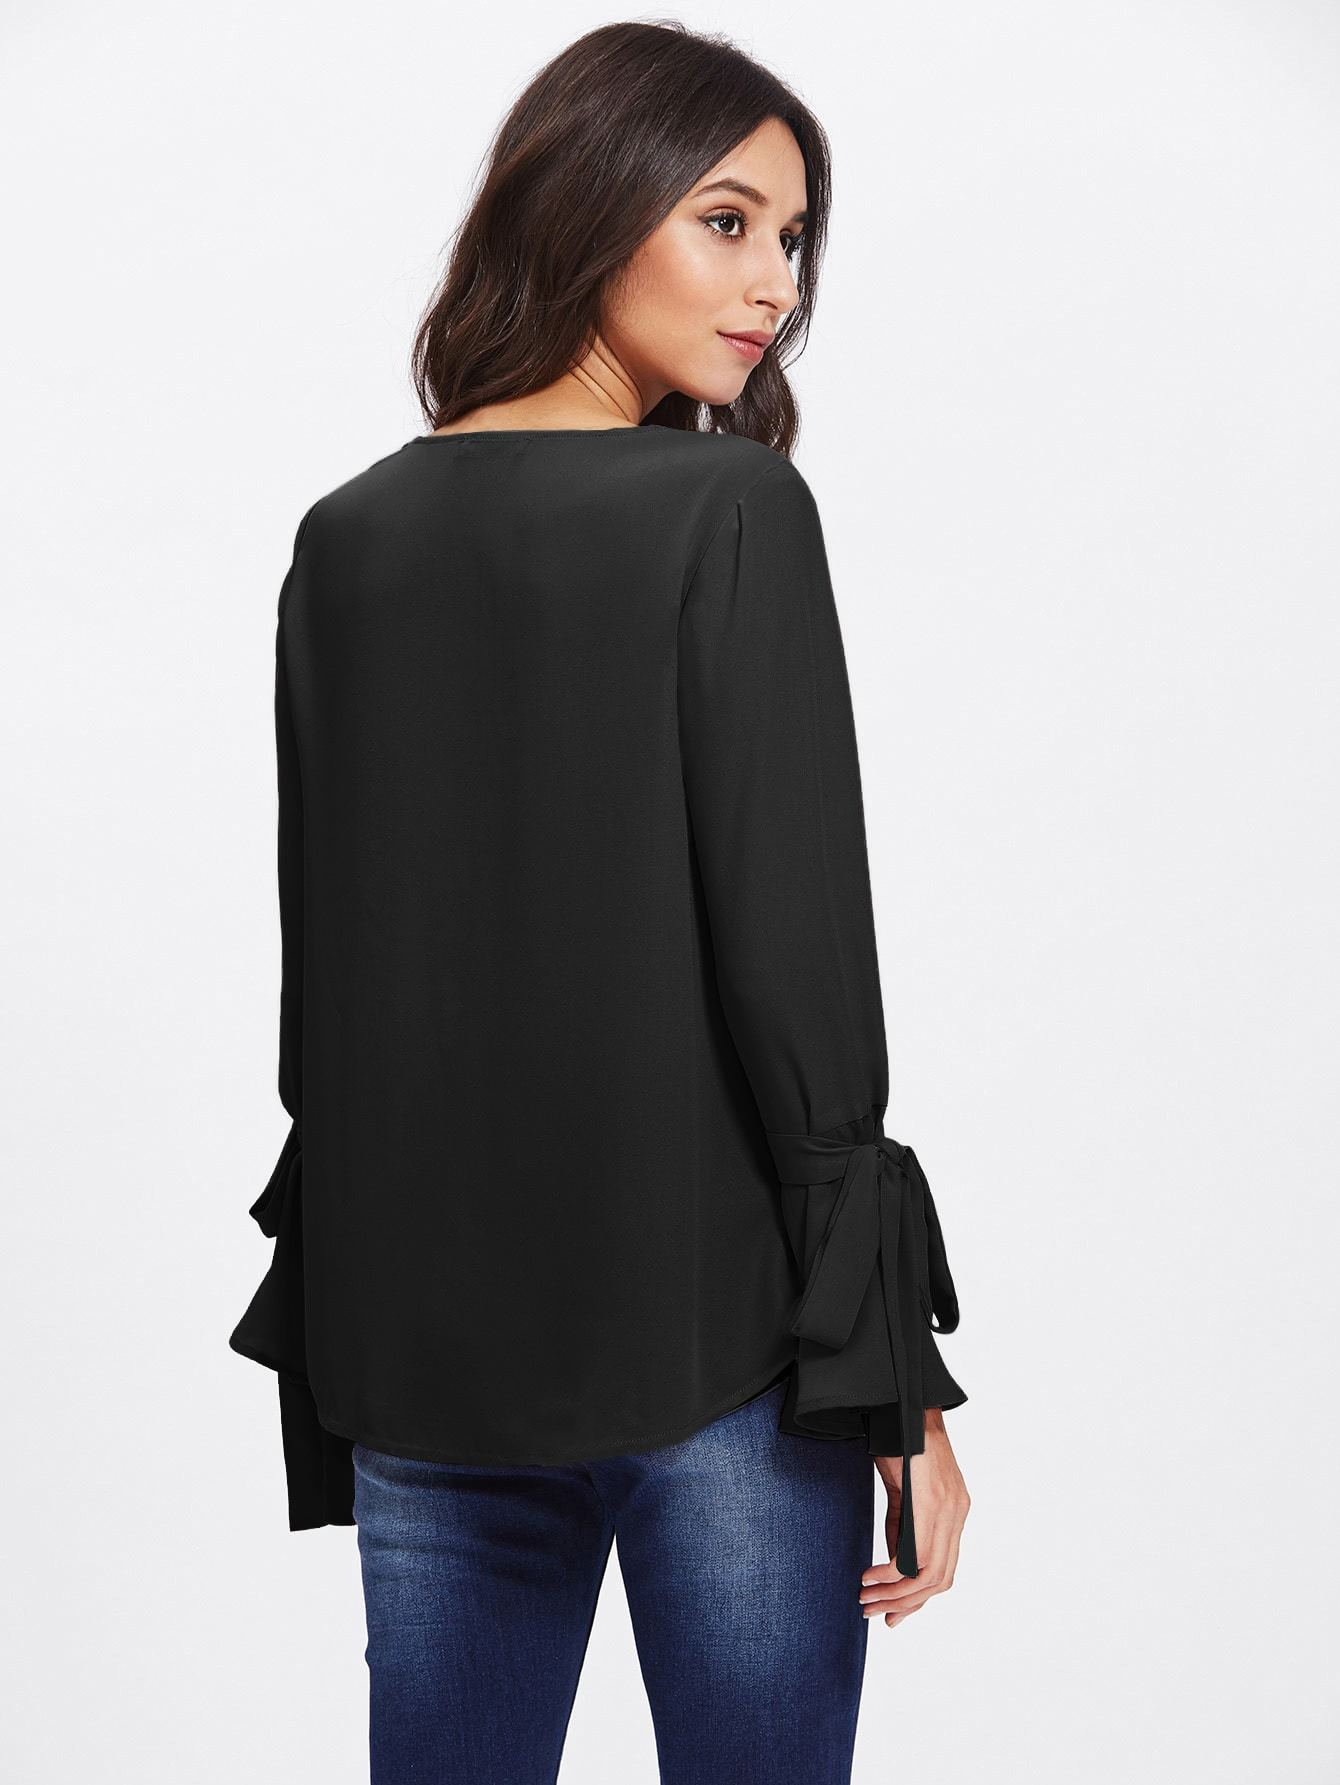 Embellished Bell Cuff Blouse - LoveSylvester